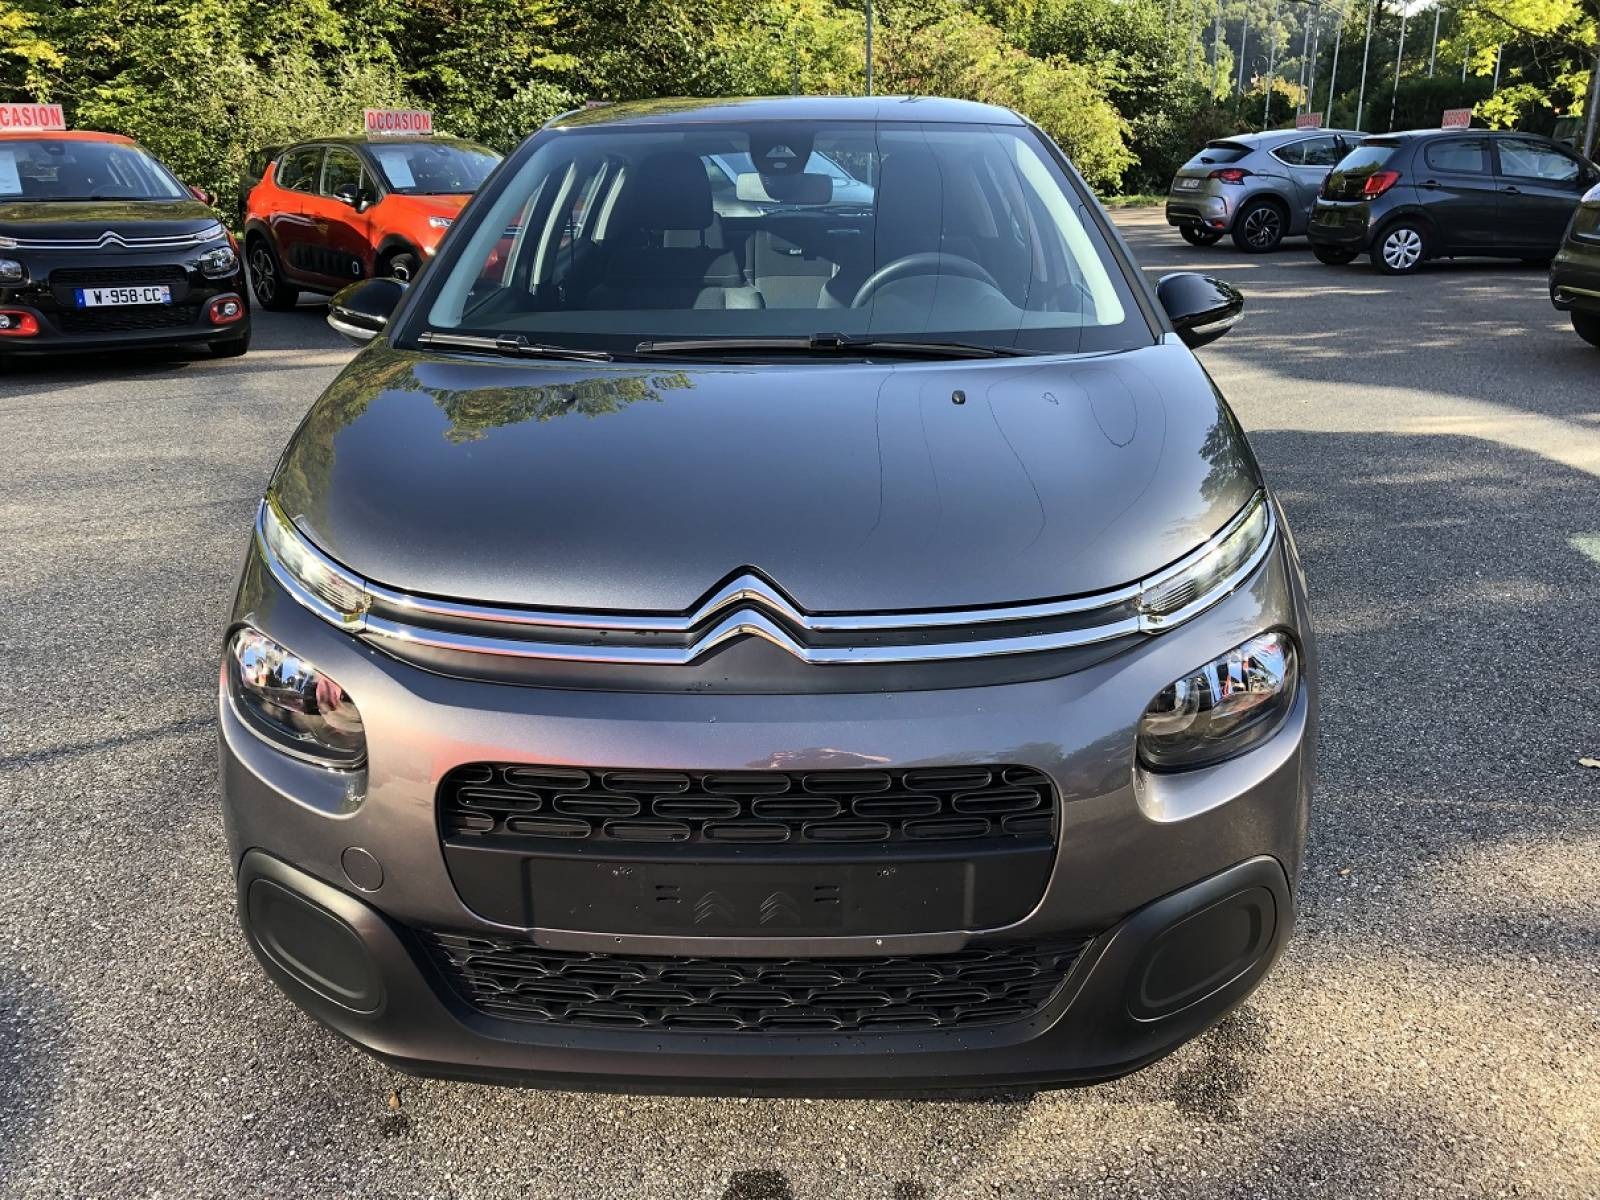 Voiture d'occasion CITROEN C3 1.6 BLUE HDI 75 FEEL à ...